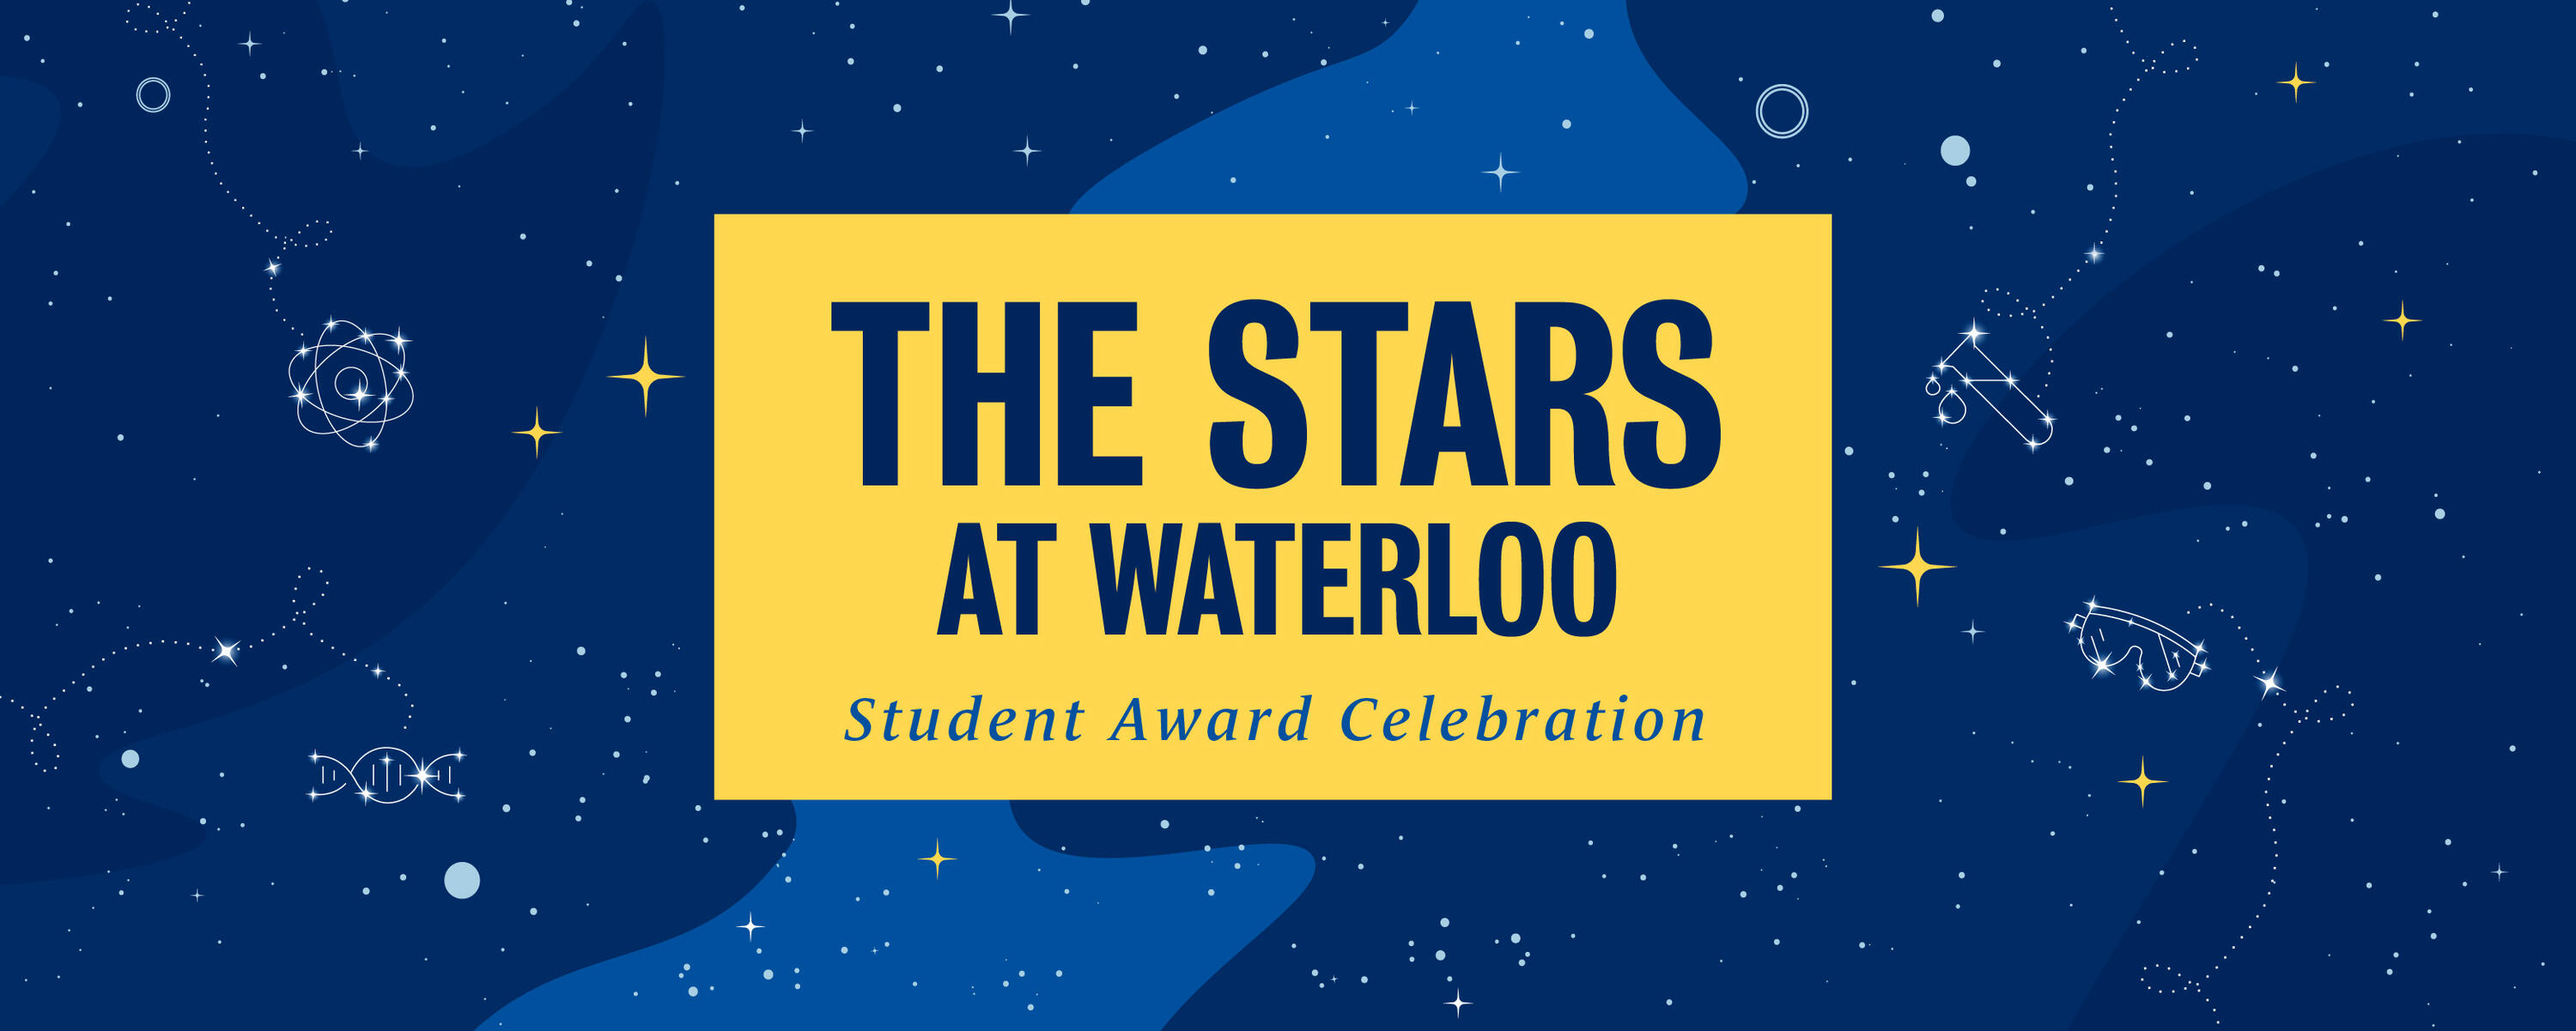 The Stars at Waterloo Student Award Celebration